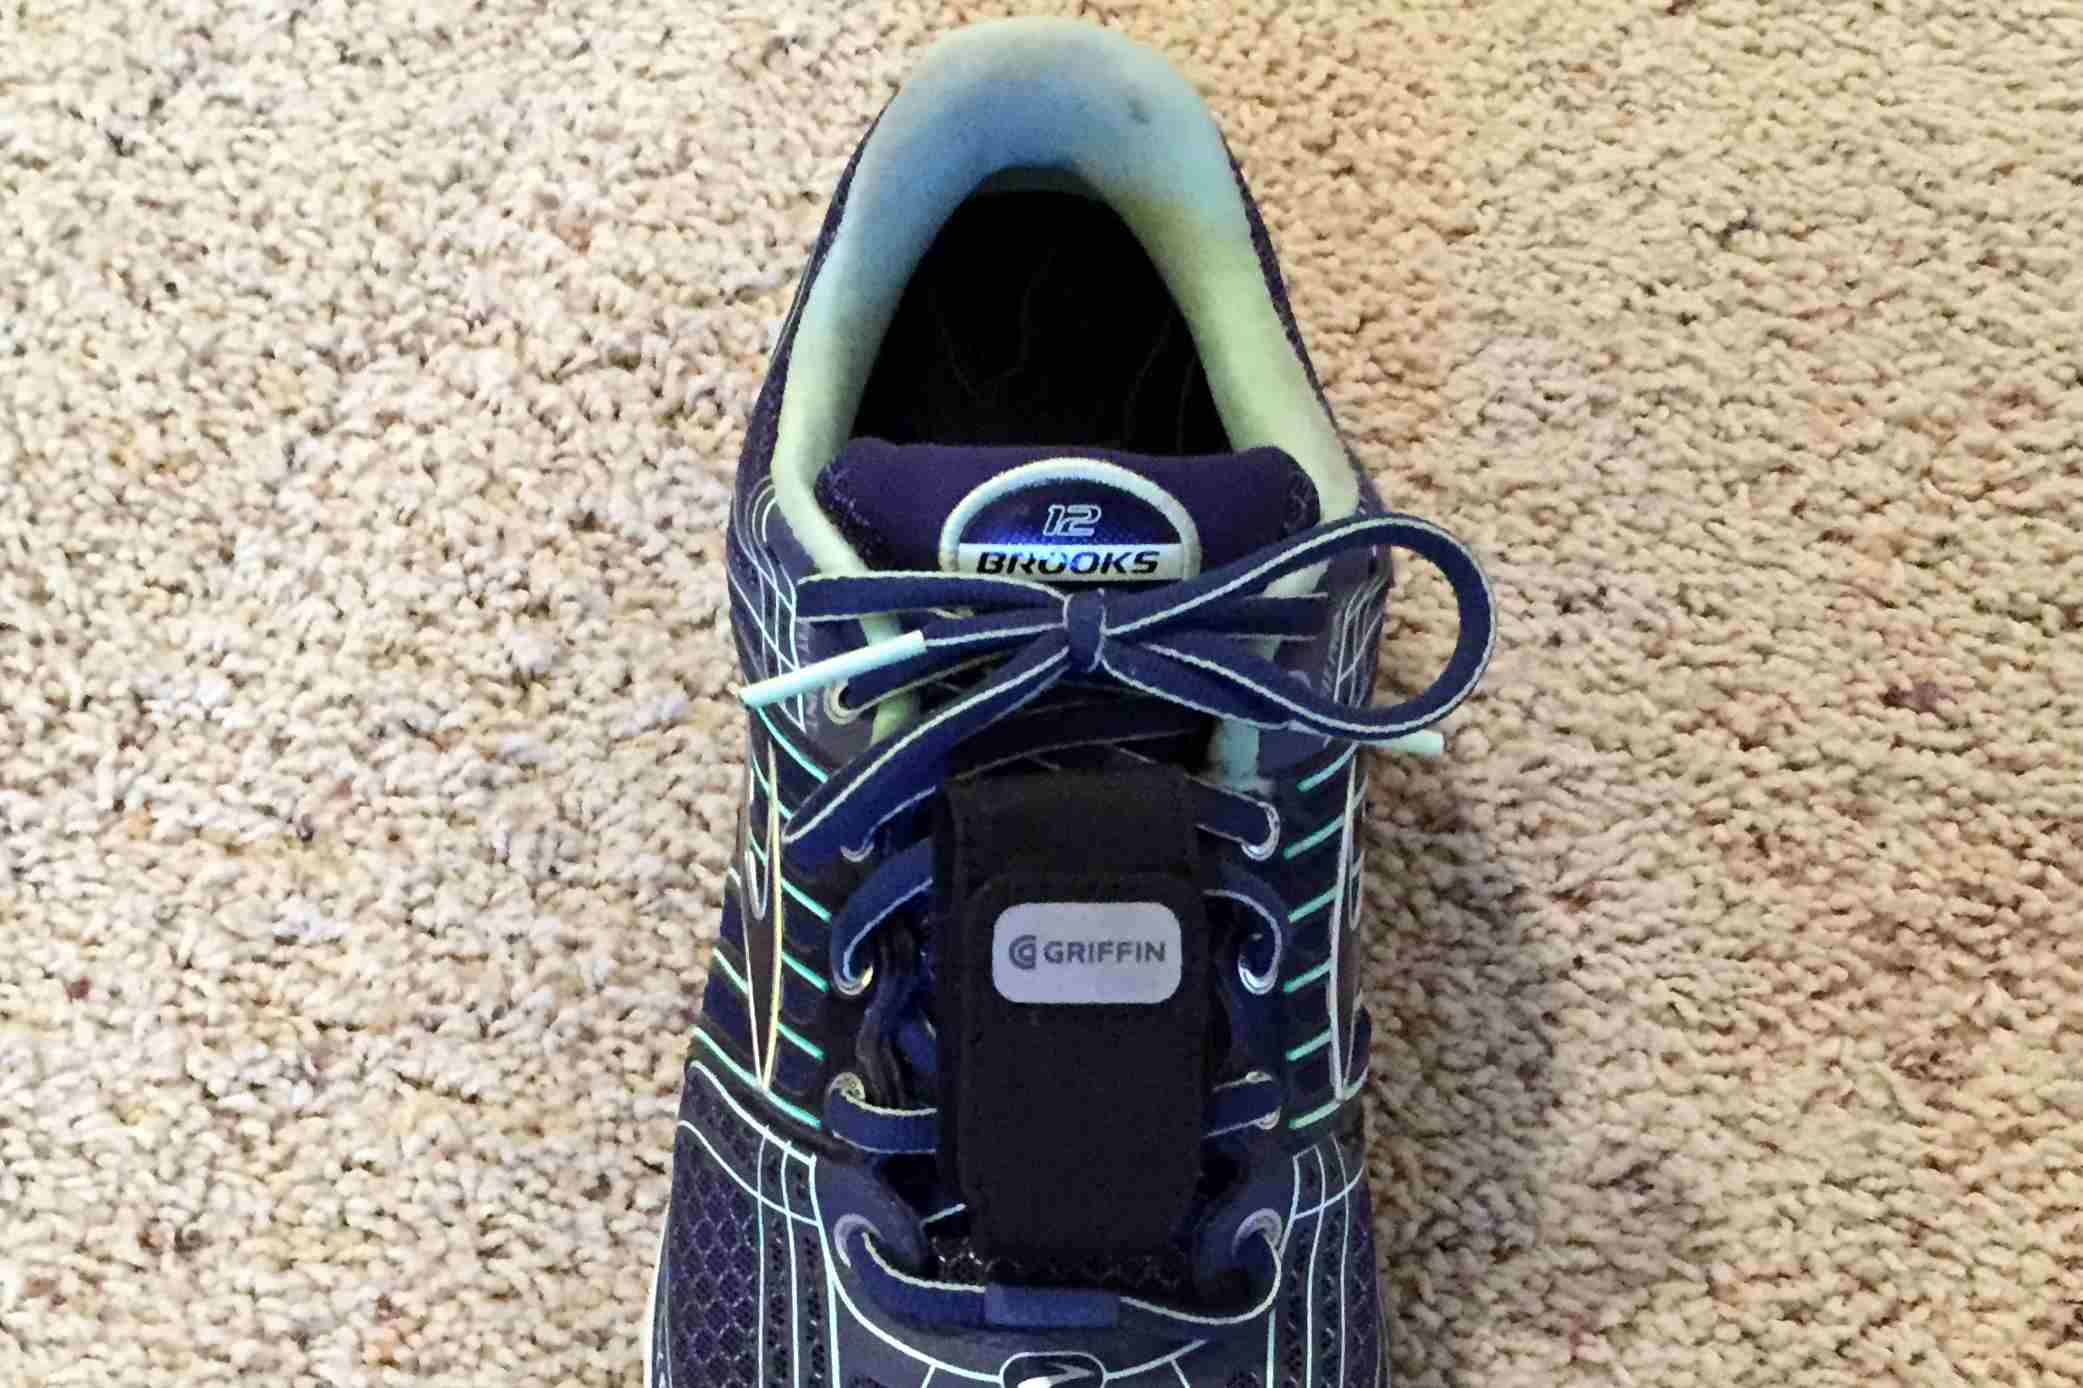 72d0d0e9cc82dc Pouches and Shoes for the Nike+ Sensor